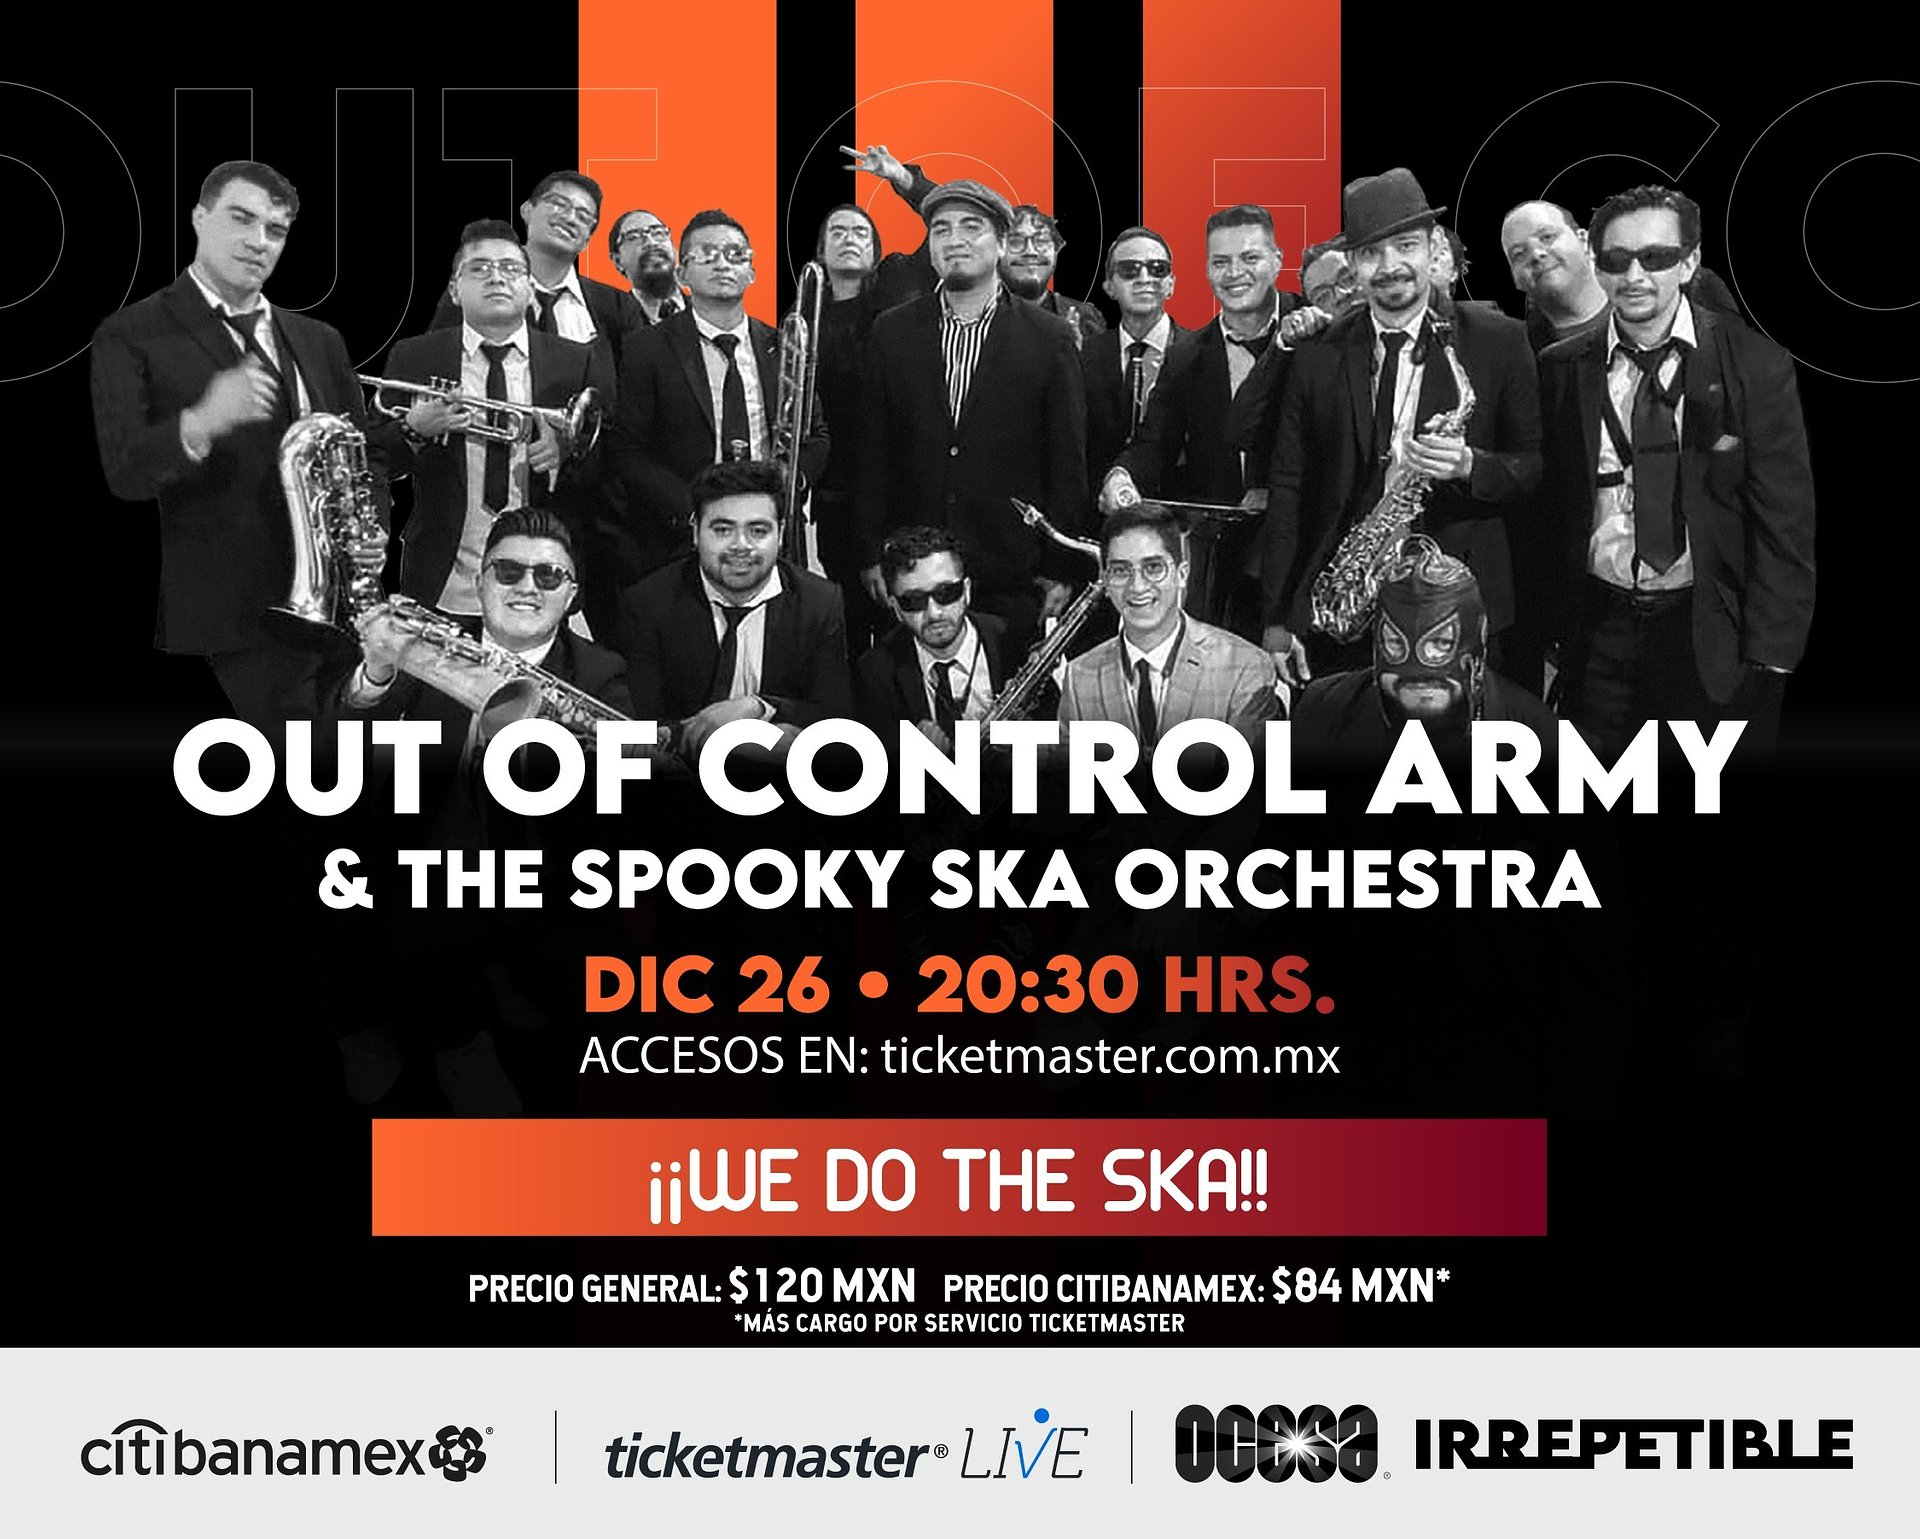 Out Of Control Army & The Spooky Ska Orchestra darán un show IRREPETIBLE